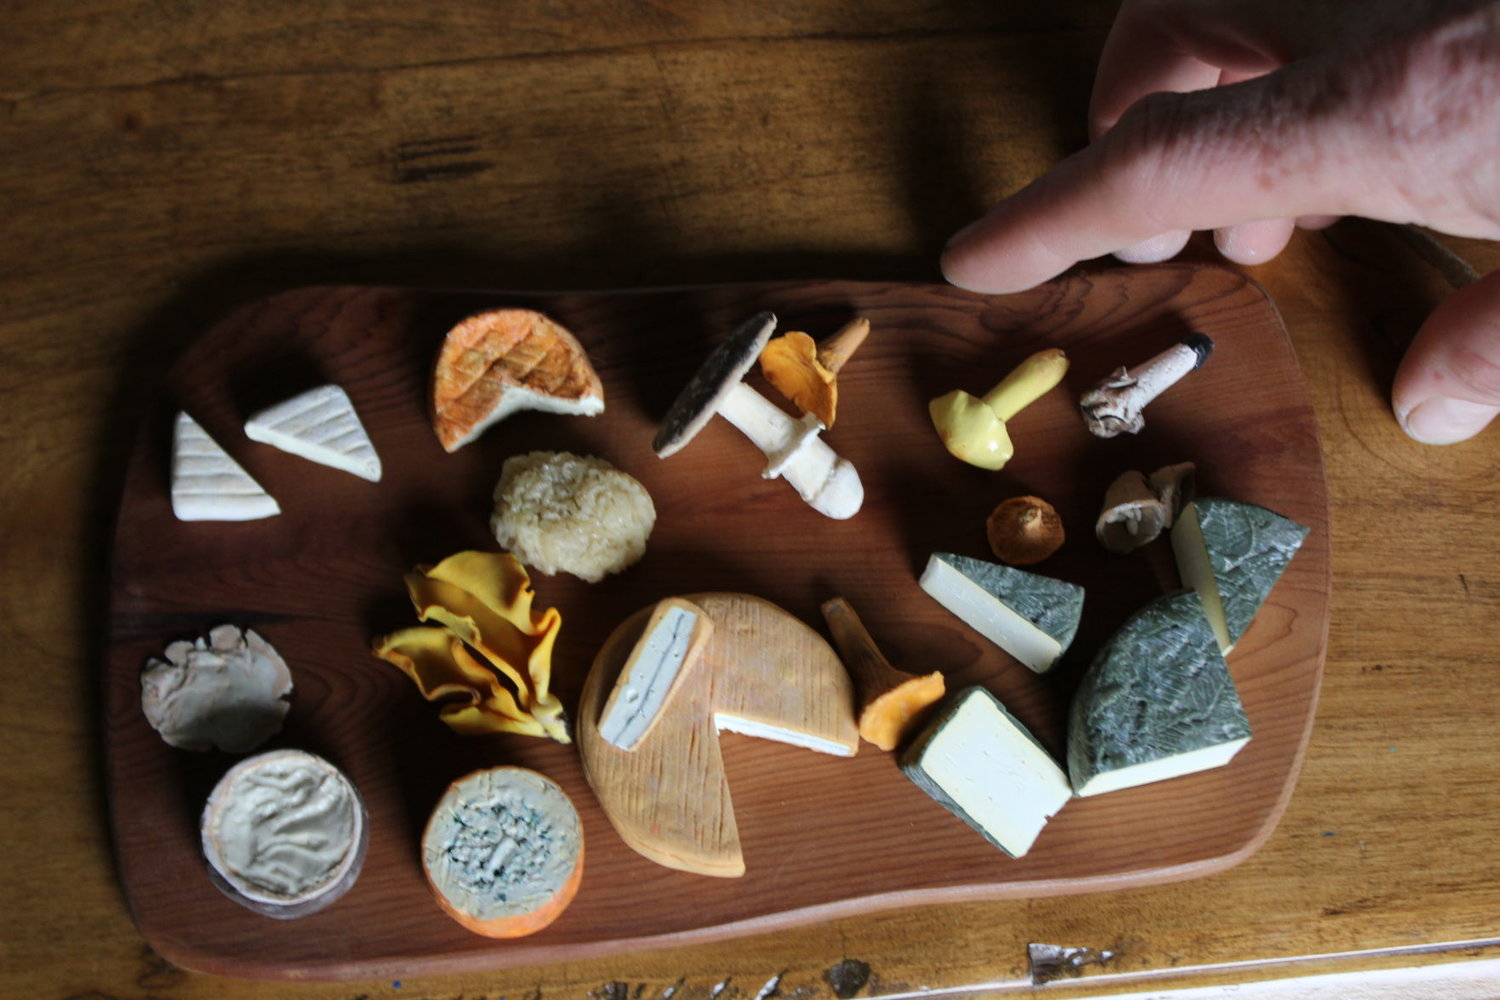 Artist Dylan Stanfield draws from his knowledge as a cheesemaker to create his miniatures. Even though they are made of clay and the size of a quarter, they look edible.